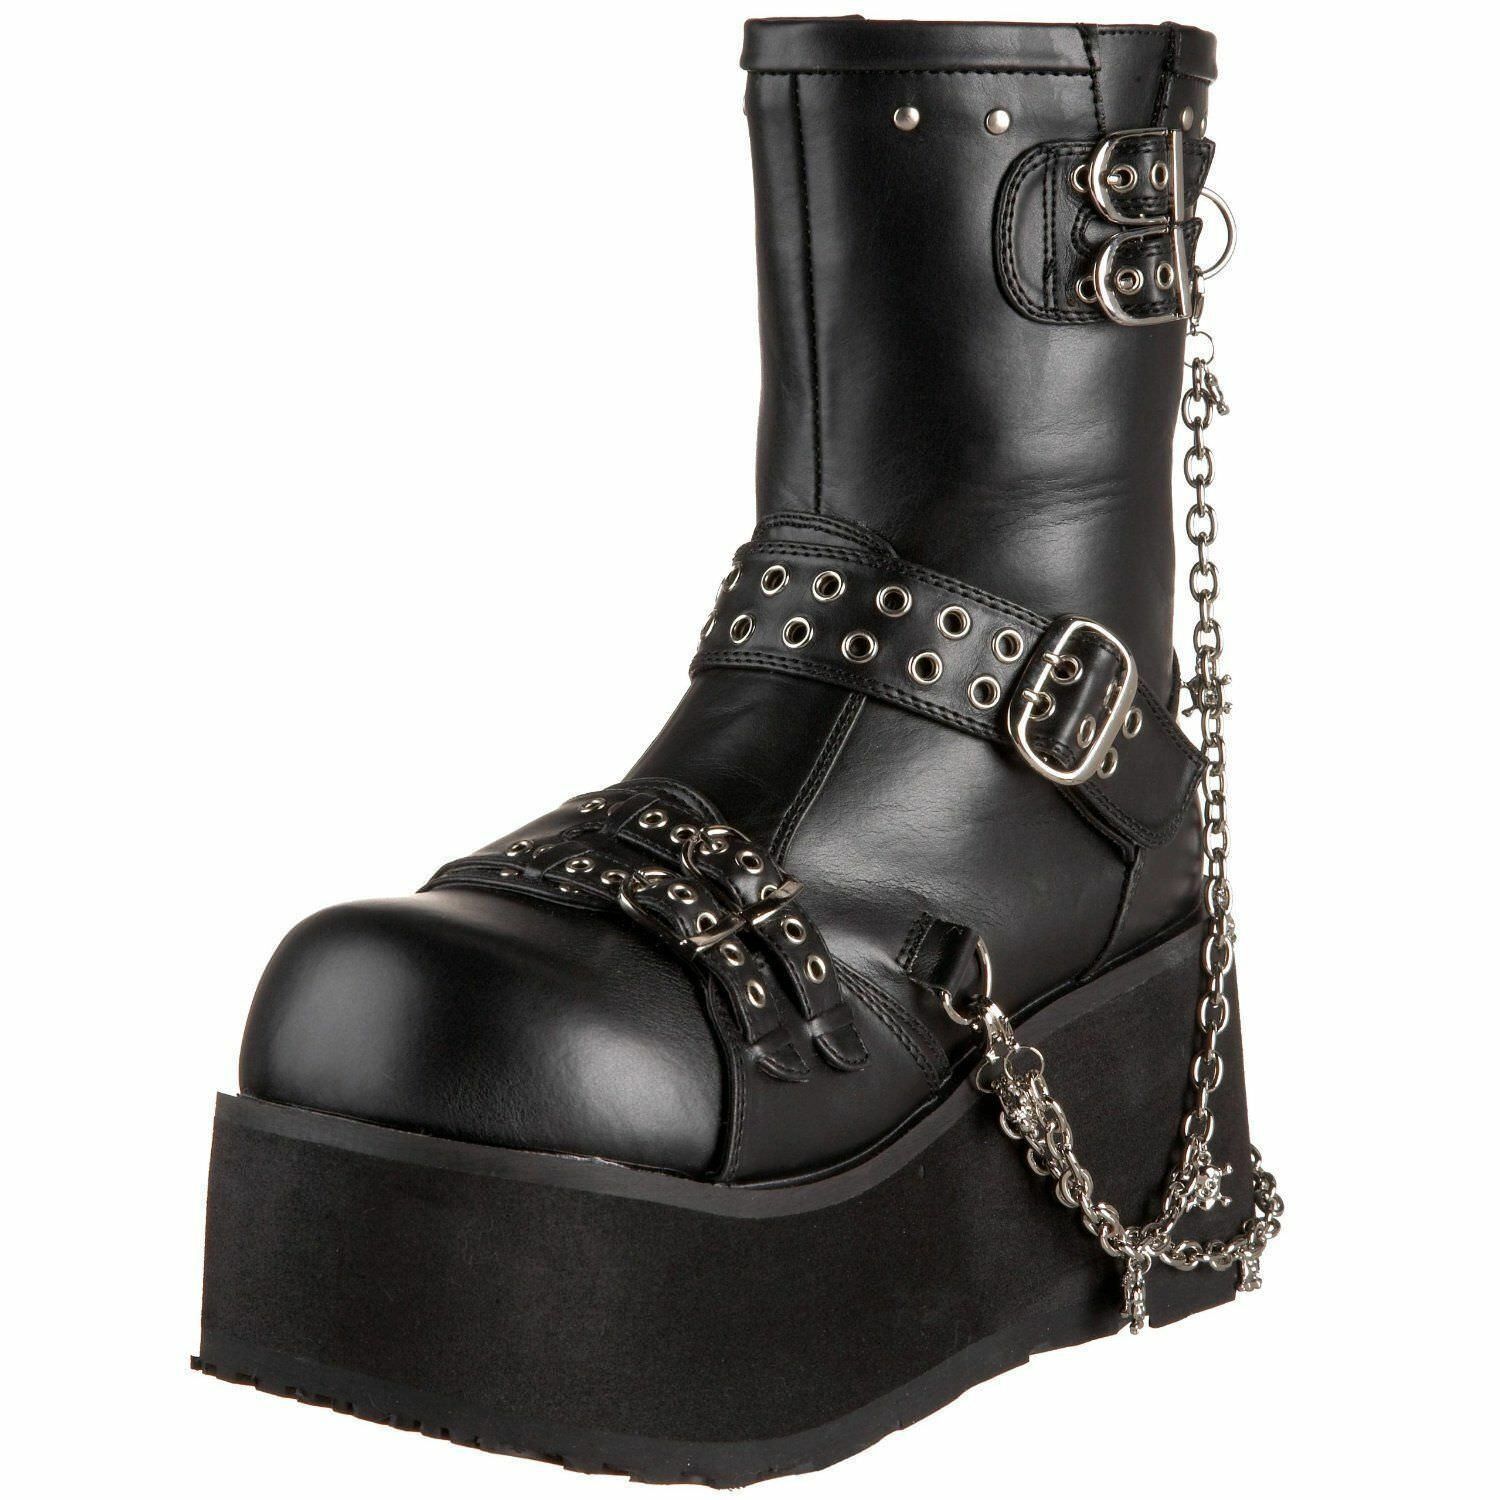 Demonia CLASH-430 Women's Goth Punk Platform Calf Boots